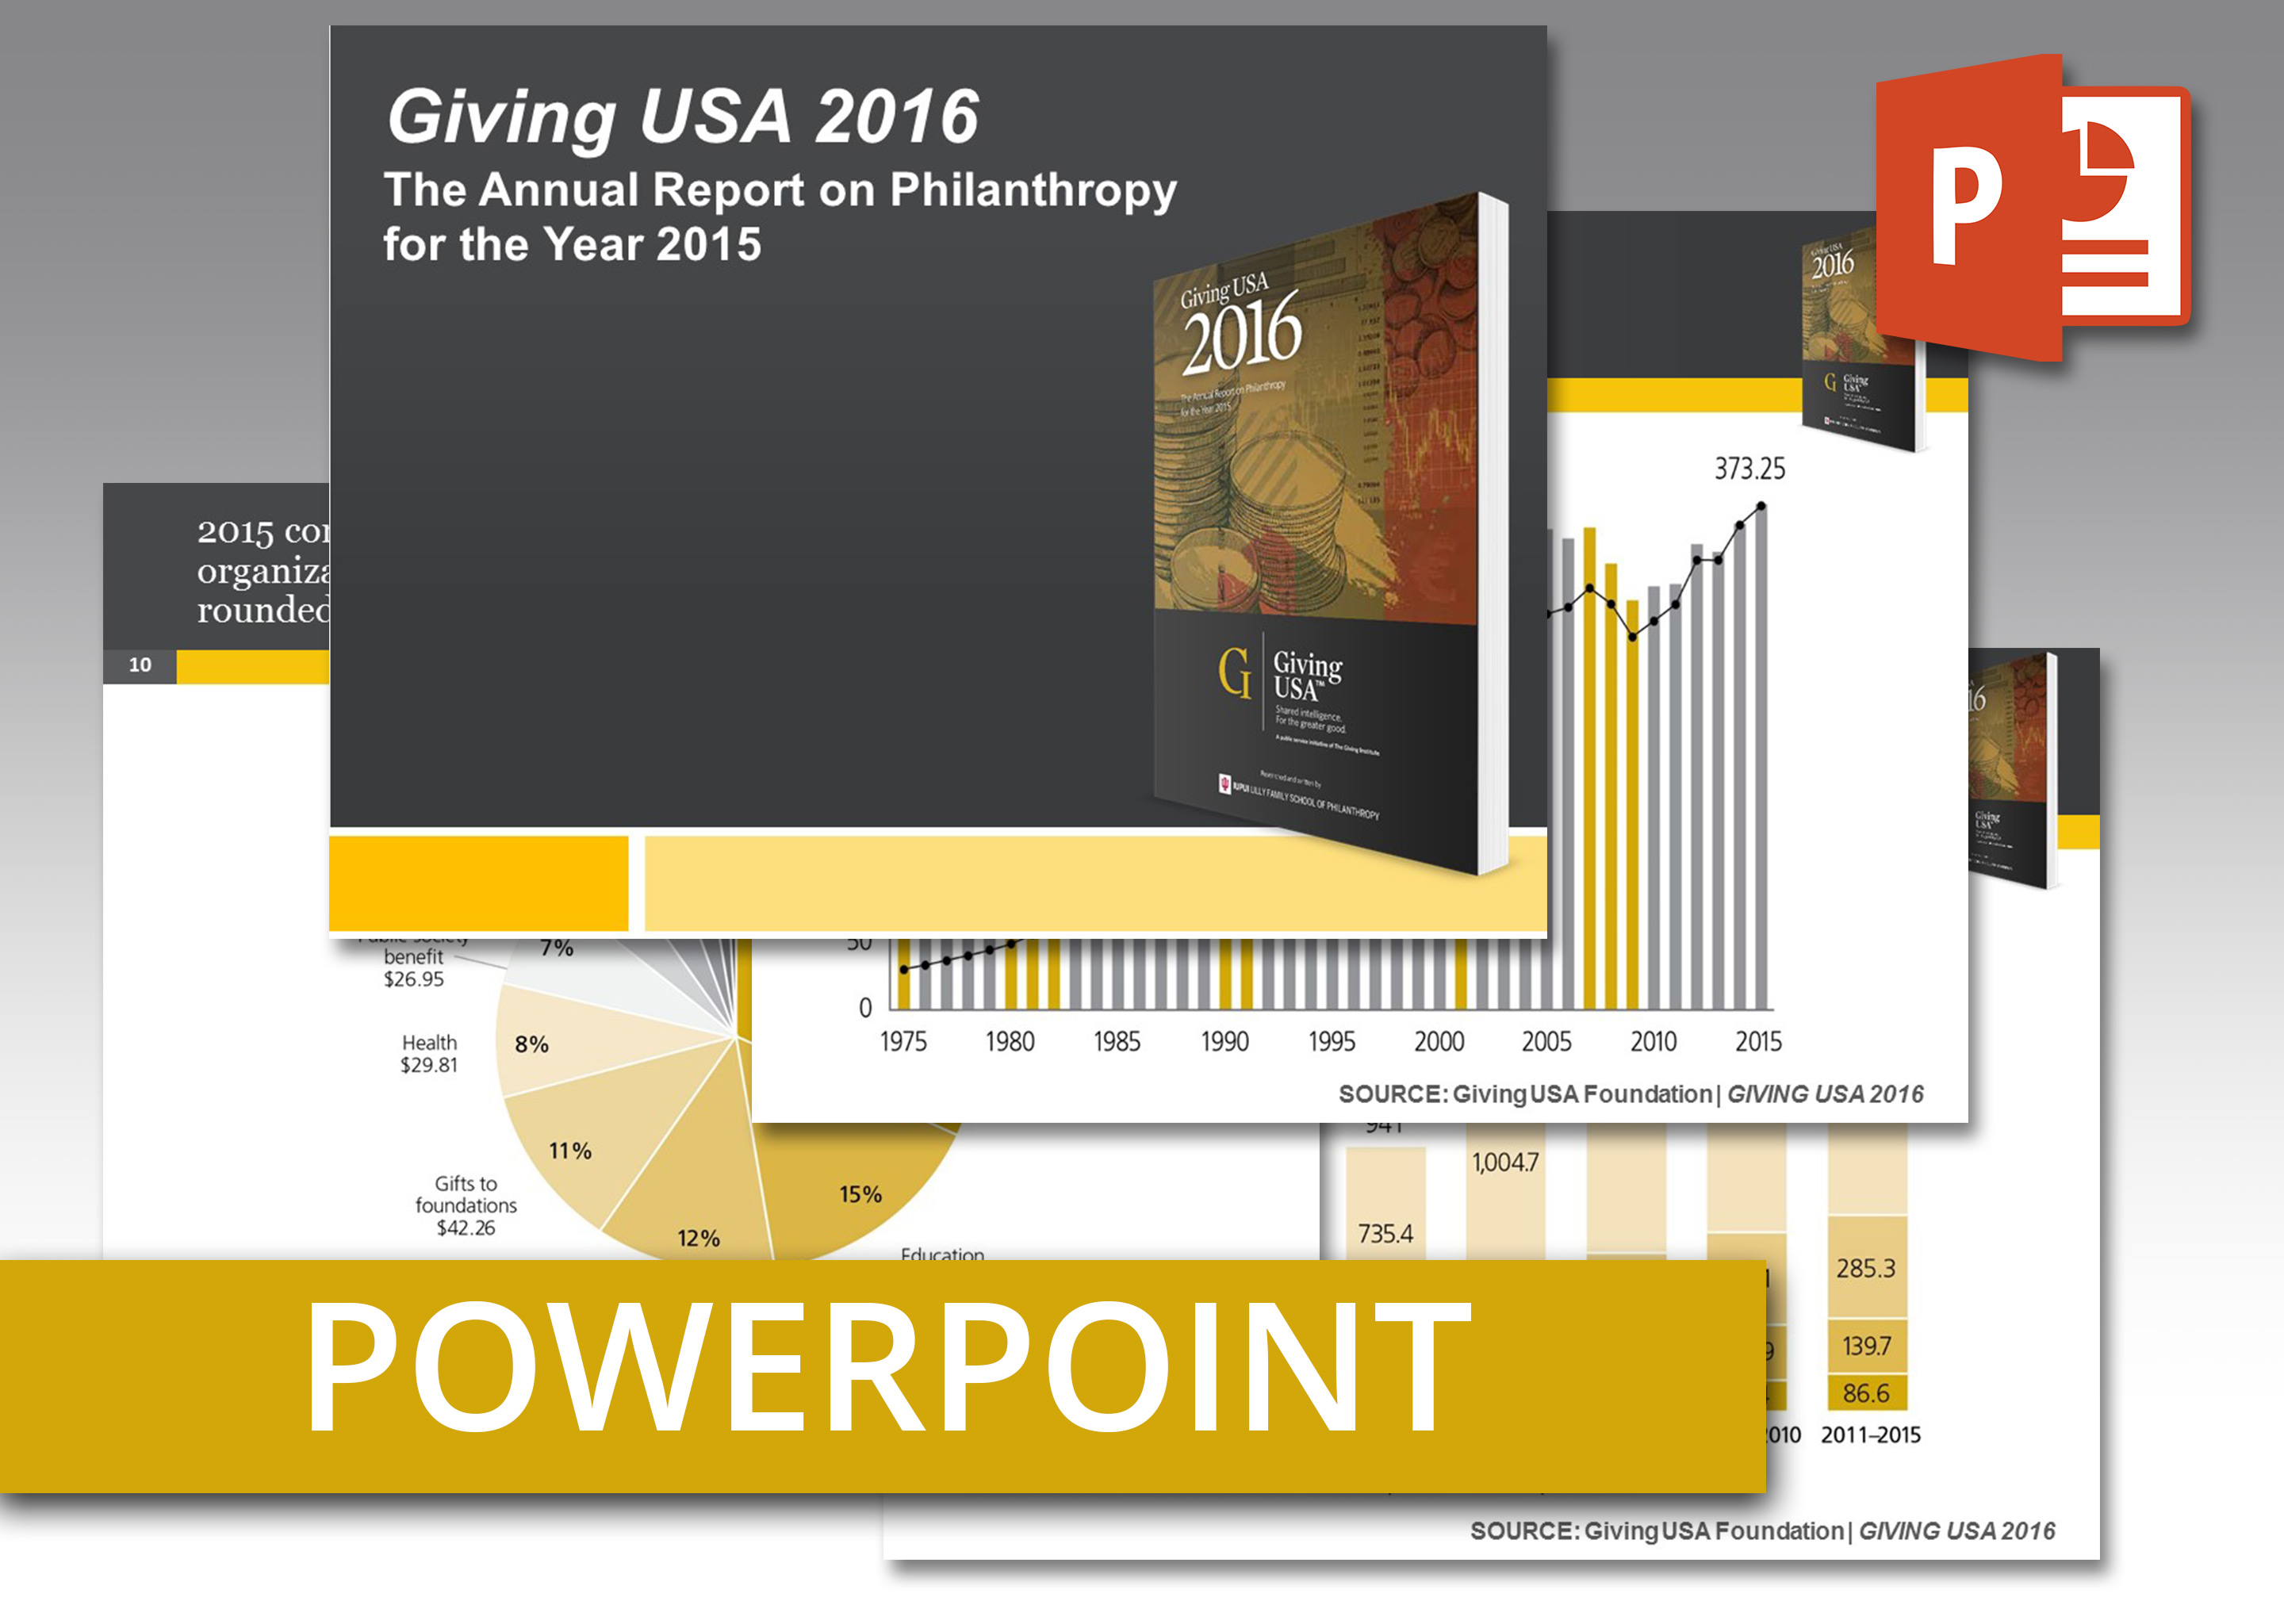 Usdgus  Wonderful Giving Usa  Powerpoint An Easytouse Presentation Of Report  With Outstanding Giving Usa  Powerpoint An Easytouse Presentation Of Report Findings Including Talking Points With Comely Invertebrates And Vertebrates Powerpoint Also Powerpoint Presentation With Animation In Addition Powerpoint Basics Handout And Design For Microsoft Powerpoint As Well As Story Mountain Powerpoint Additionally Share A Powerpoint Presentation From Givingusaorg With Usdgus  Outstanding Giving Usa  Powerpoint An Easytouse Presentation Of Report  With Comely Giving Usa  Powerpoint An Easytouse Presentation Of Report Findings Including Talking Points And Wonderful Invertebrates And Vertebrates Powerpoint Also Powerpoint Presentation With Animation In Addition Powerpoint Basics Handout From Givingusaorg